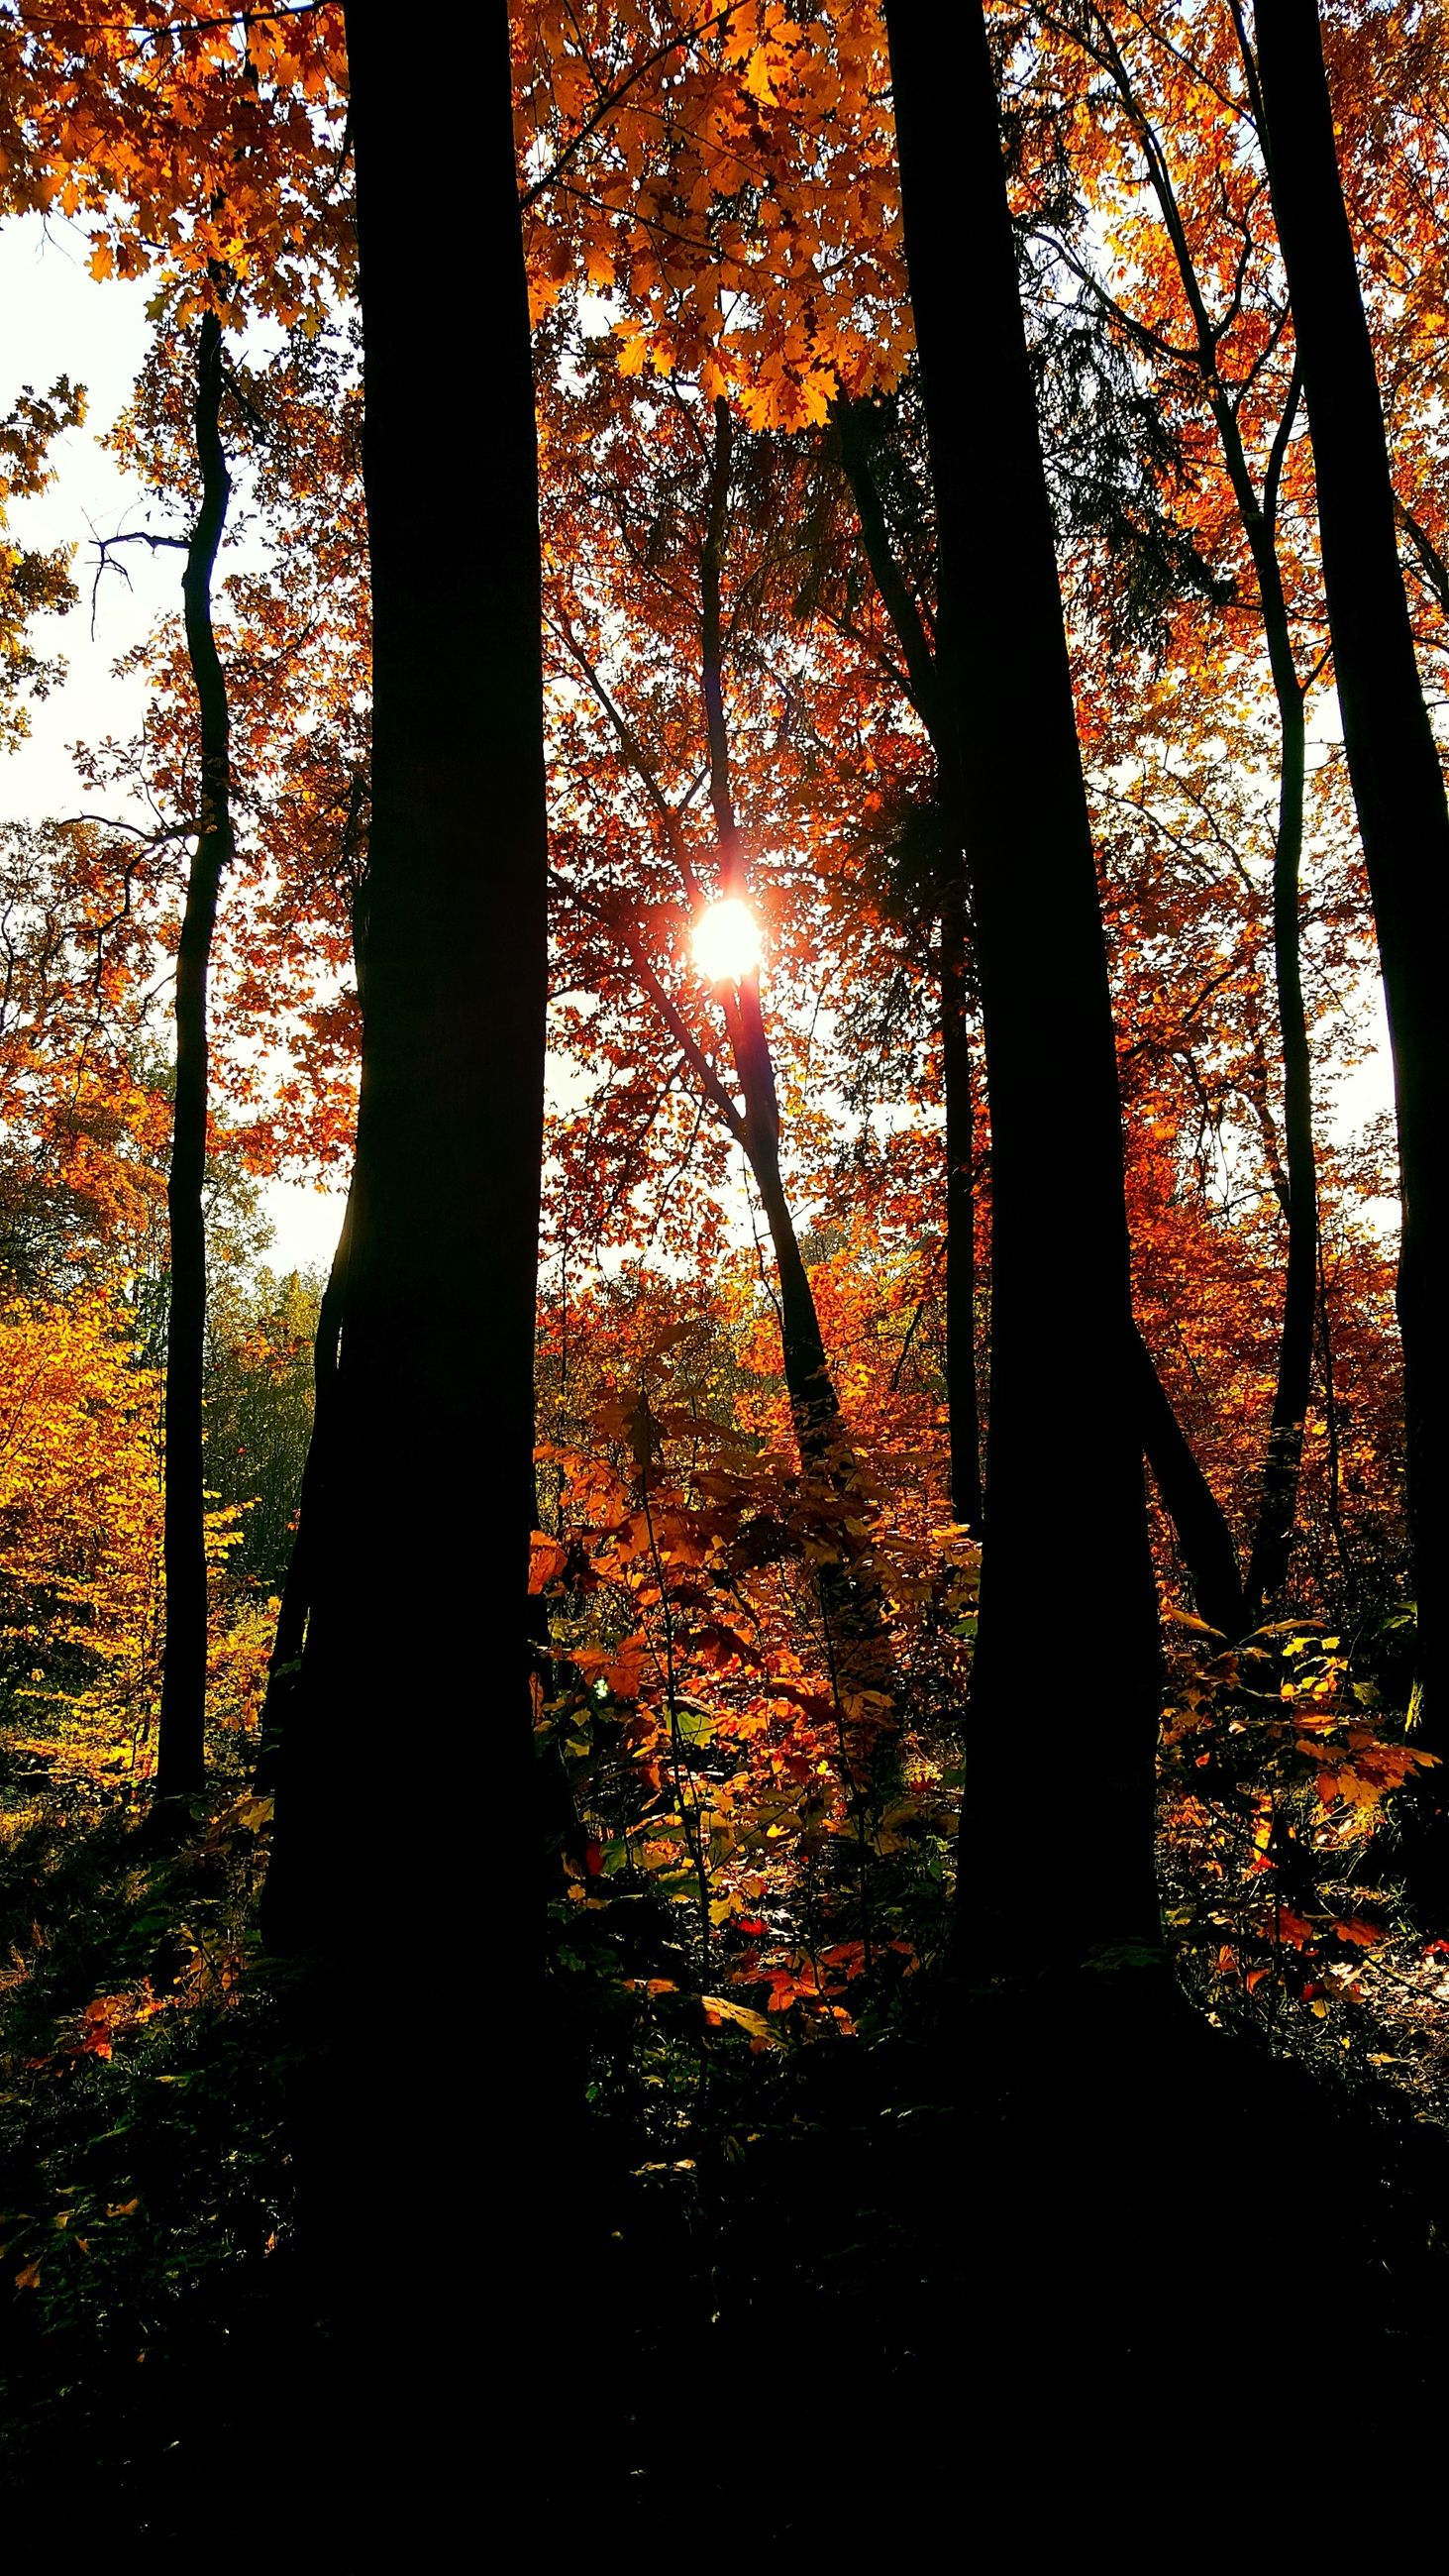 no people, orange color, tree, nature, sunset, silhouette, growth, close-up, sky, illuminated, beauty in nature, outdoors, backgrounds, day